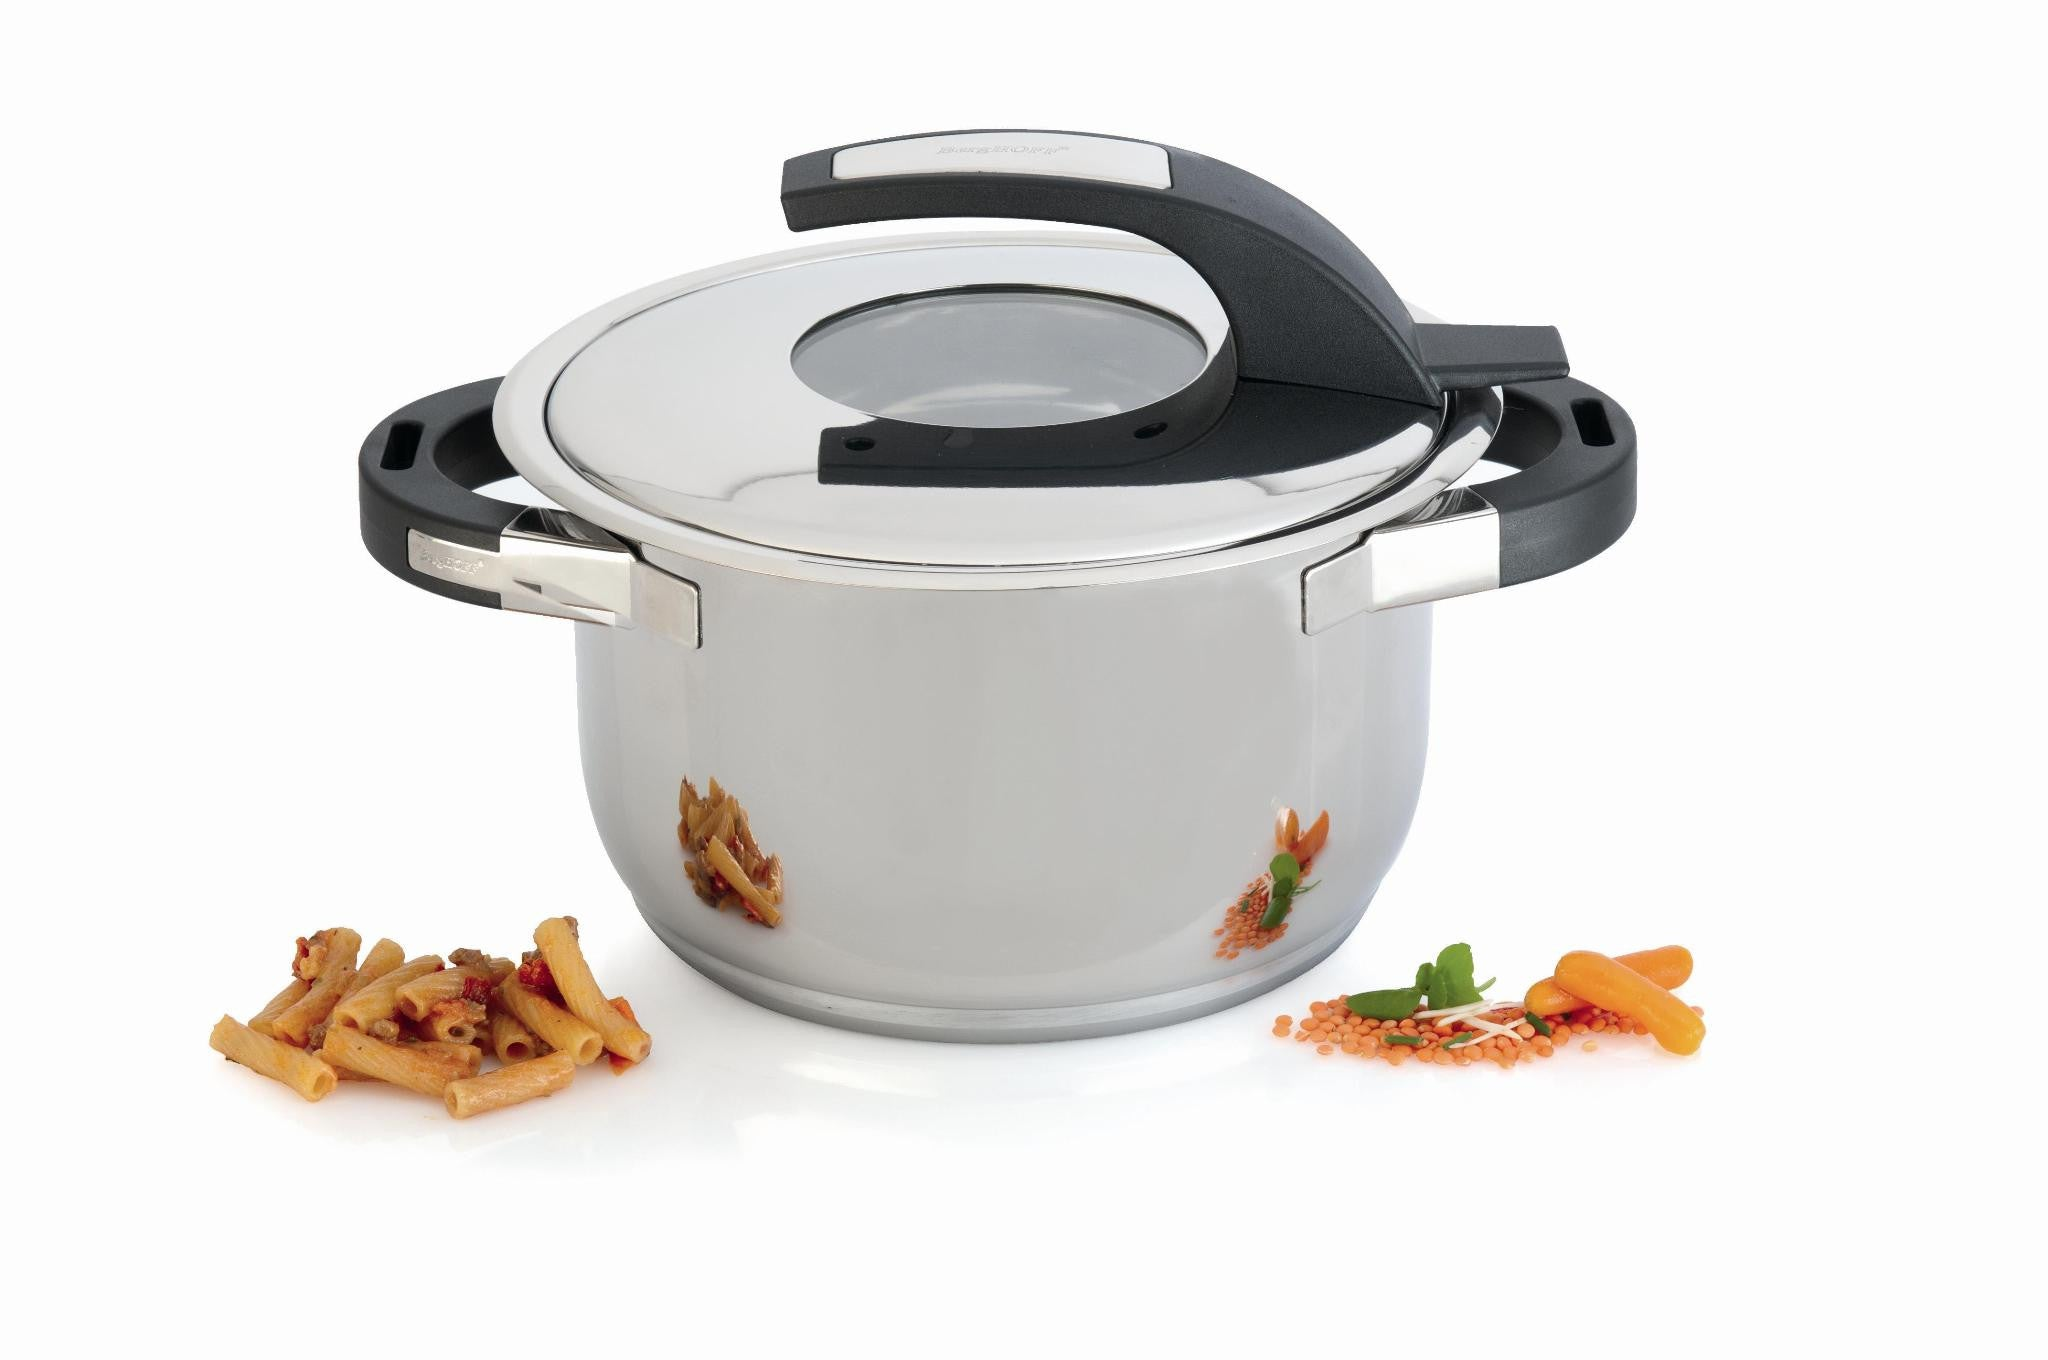 Virgo Stainless Steel 24cm Covered Stockpot